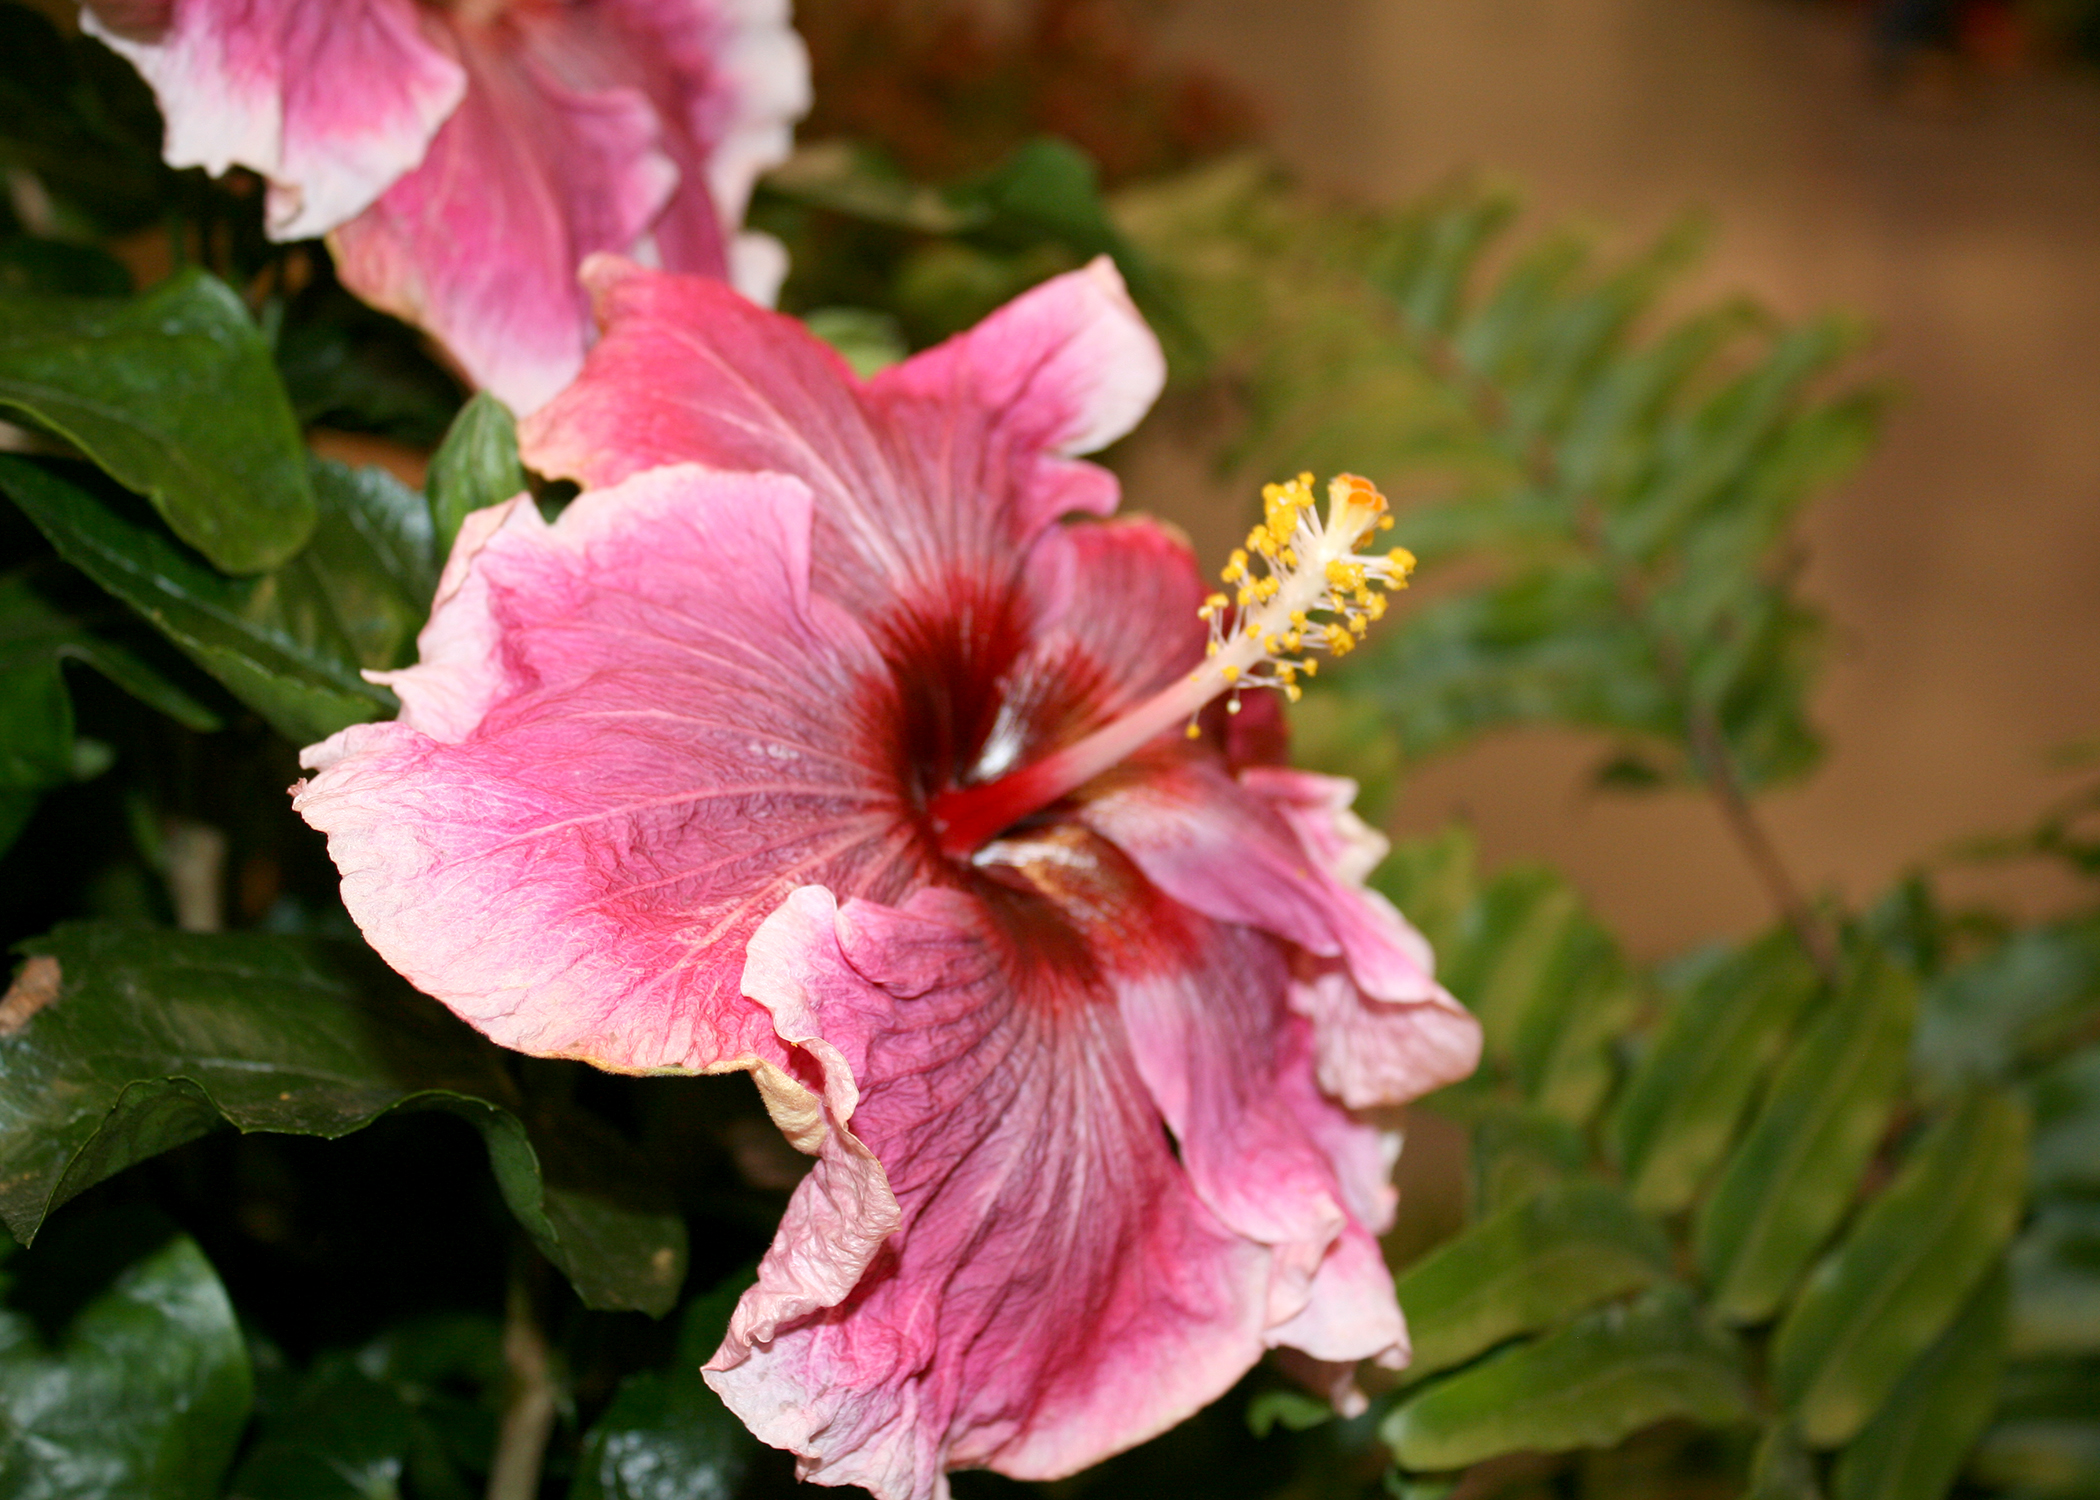 Cajun hibiscuses such as this Hotsy Totsy are tropical plants with exciting colors. Blooms can exceed 9 inches across, and foliage is dark green and glossy. (Photo by MSU Extension/Gary Bachman)